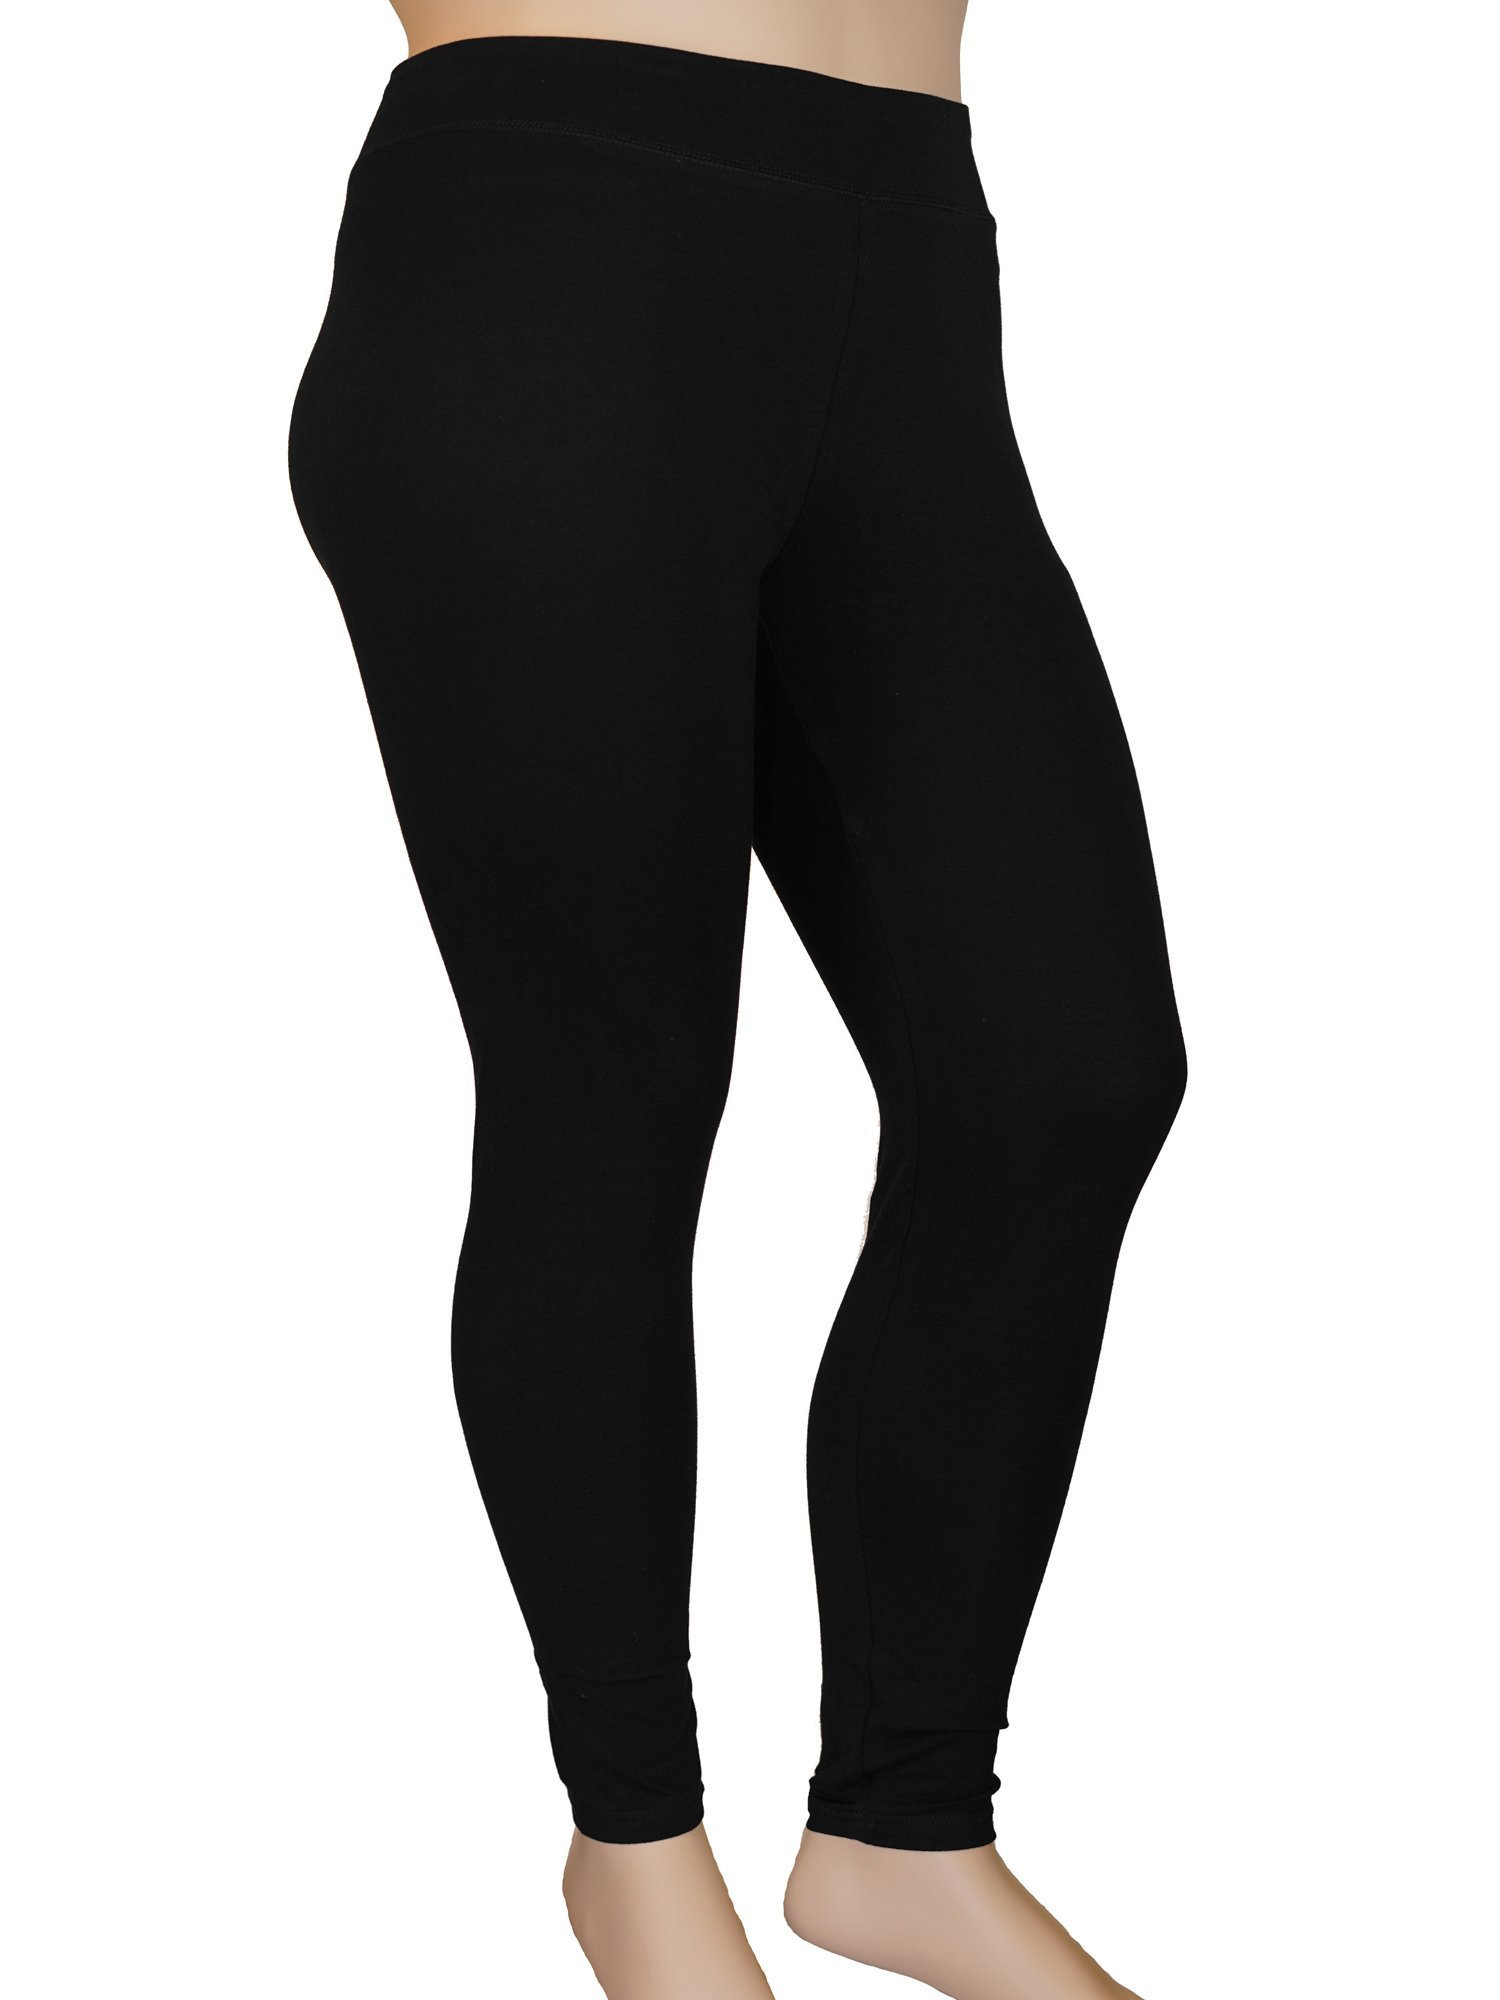 Stylzoo Women's Plus Size Comfy Stretch Ankle Length Leggings Yoga Stretch Pants Black 2X